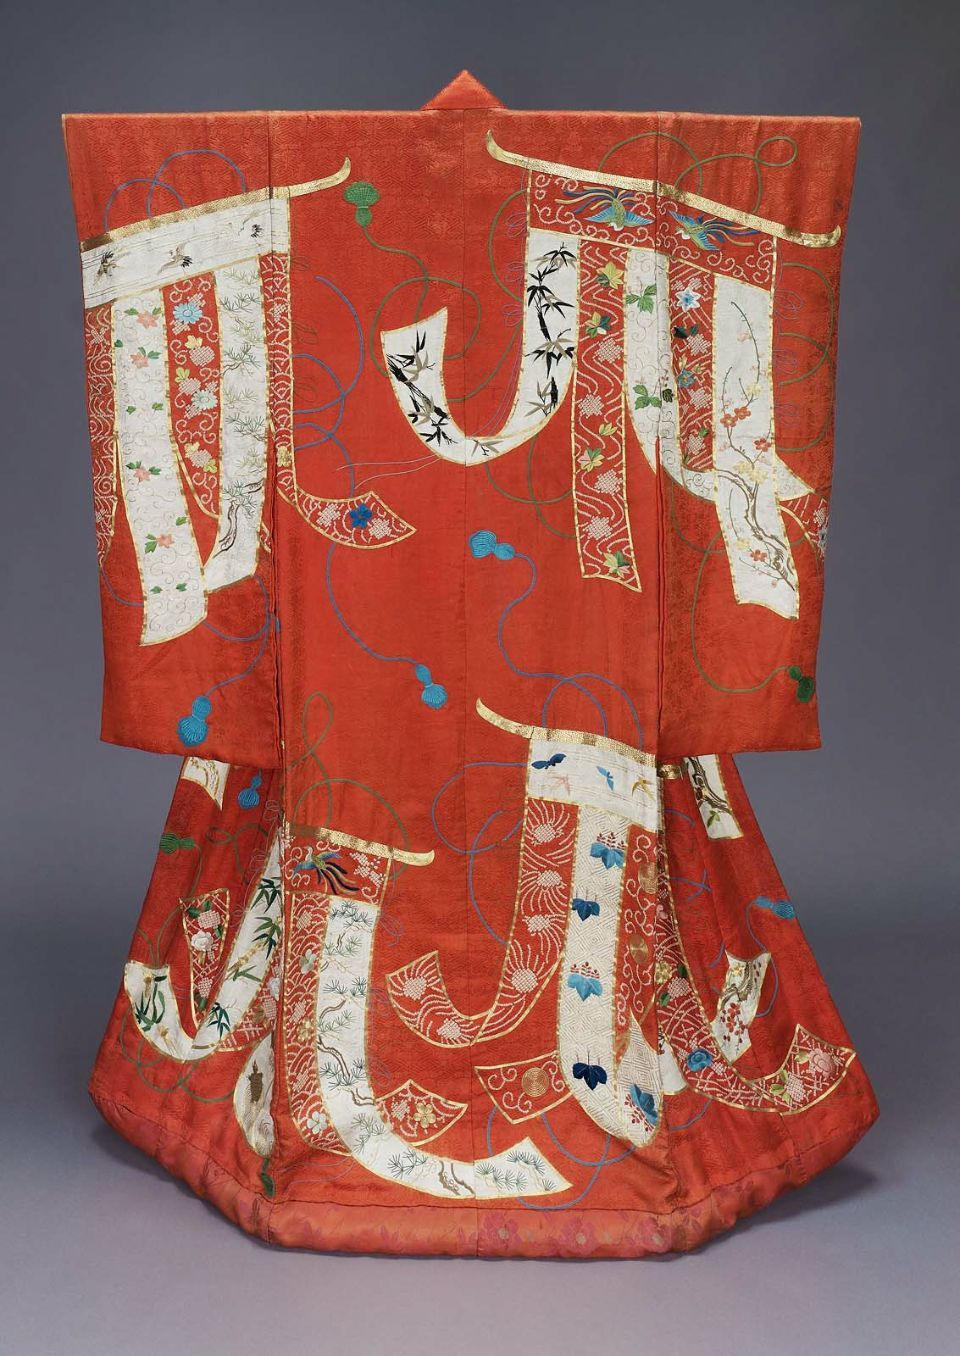 red wedding kimono uchikake japanese edo period 19th century japanische textilien. Black Bedroom Furniture Sets. Home Design Ideas